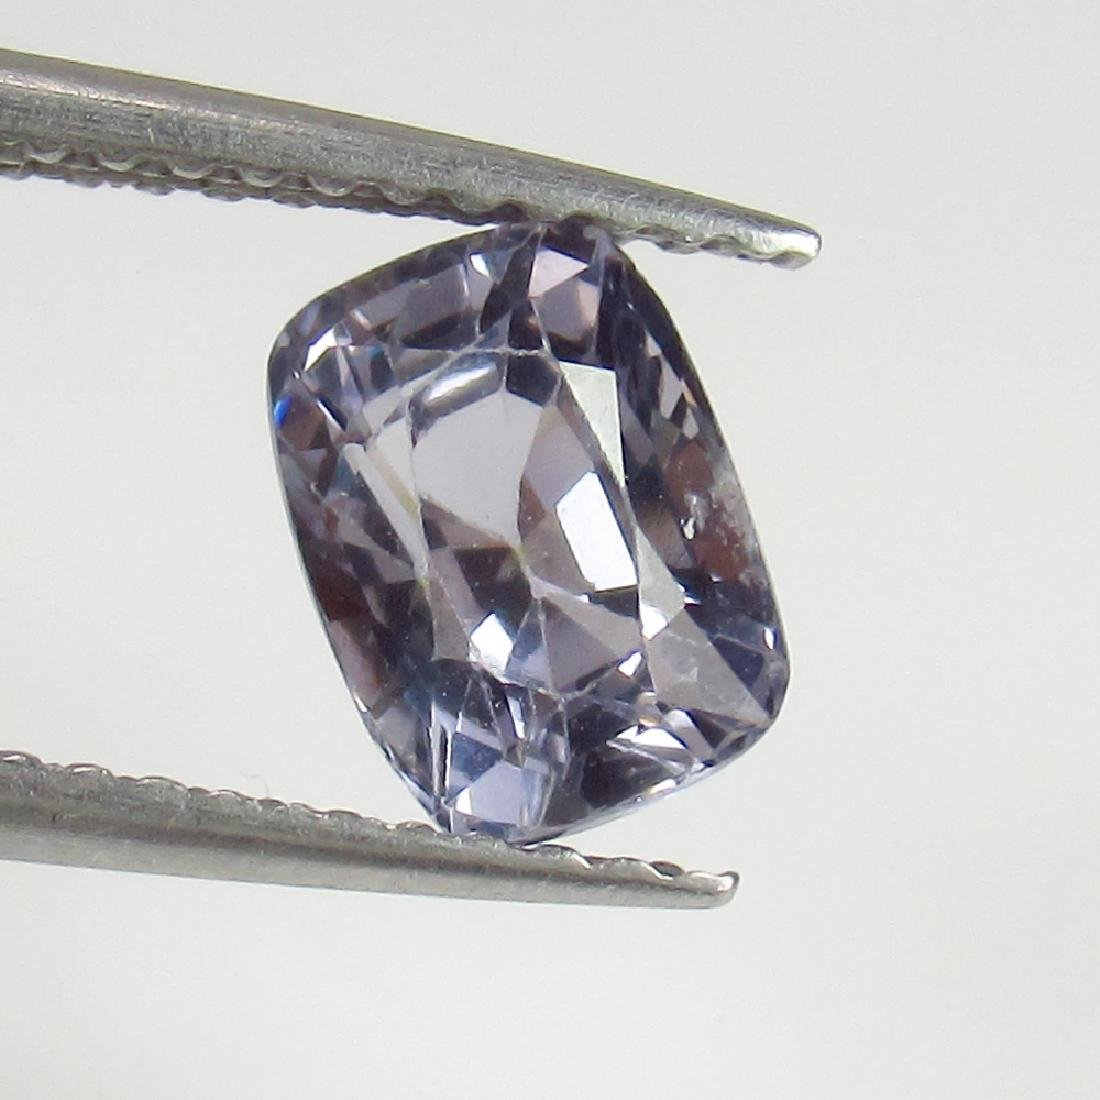 1.39 Ct Loose Burma Spinel Cushion cut